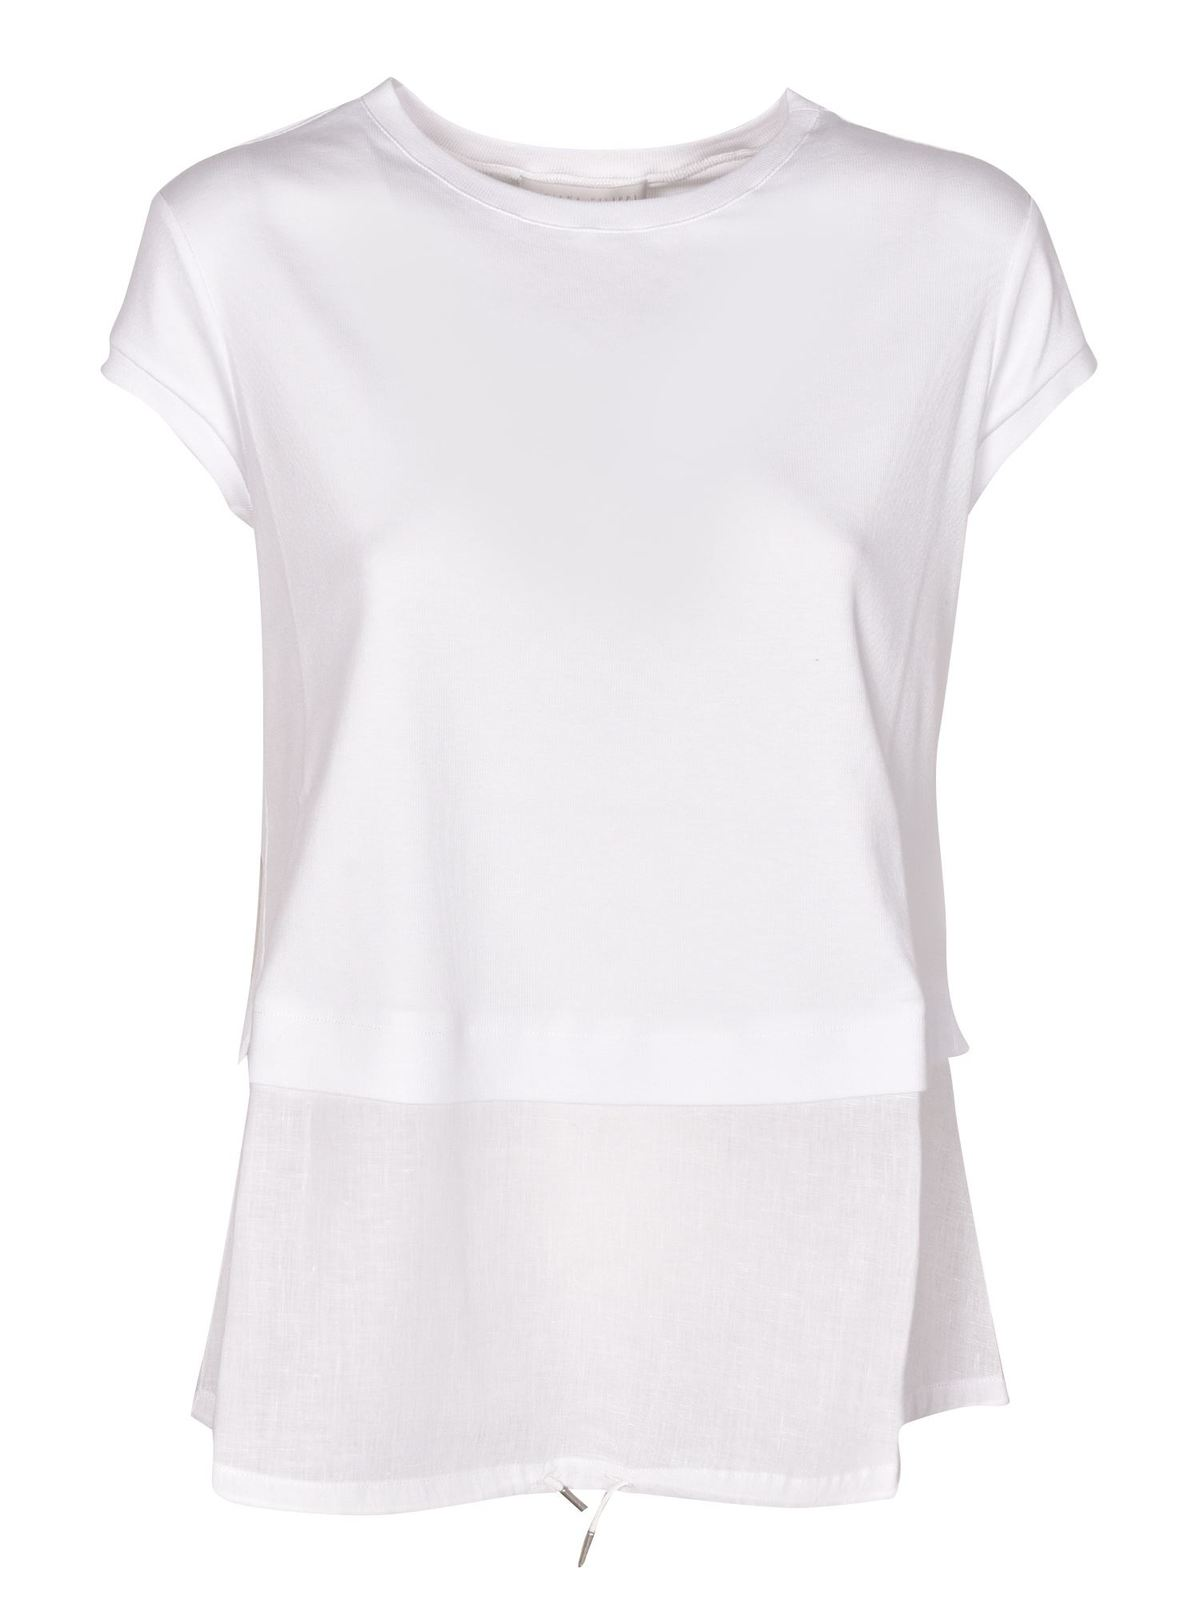 Fabiana Filippi DRAWSTRING T-SHIRT IN WHITE